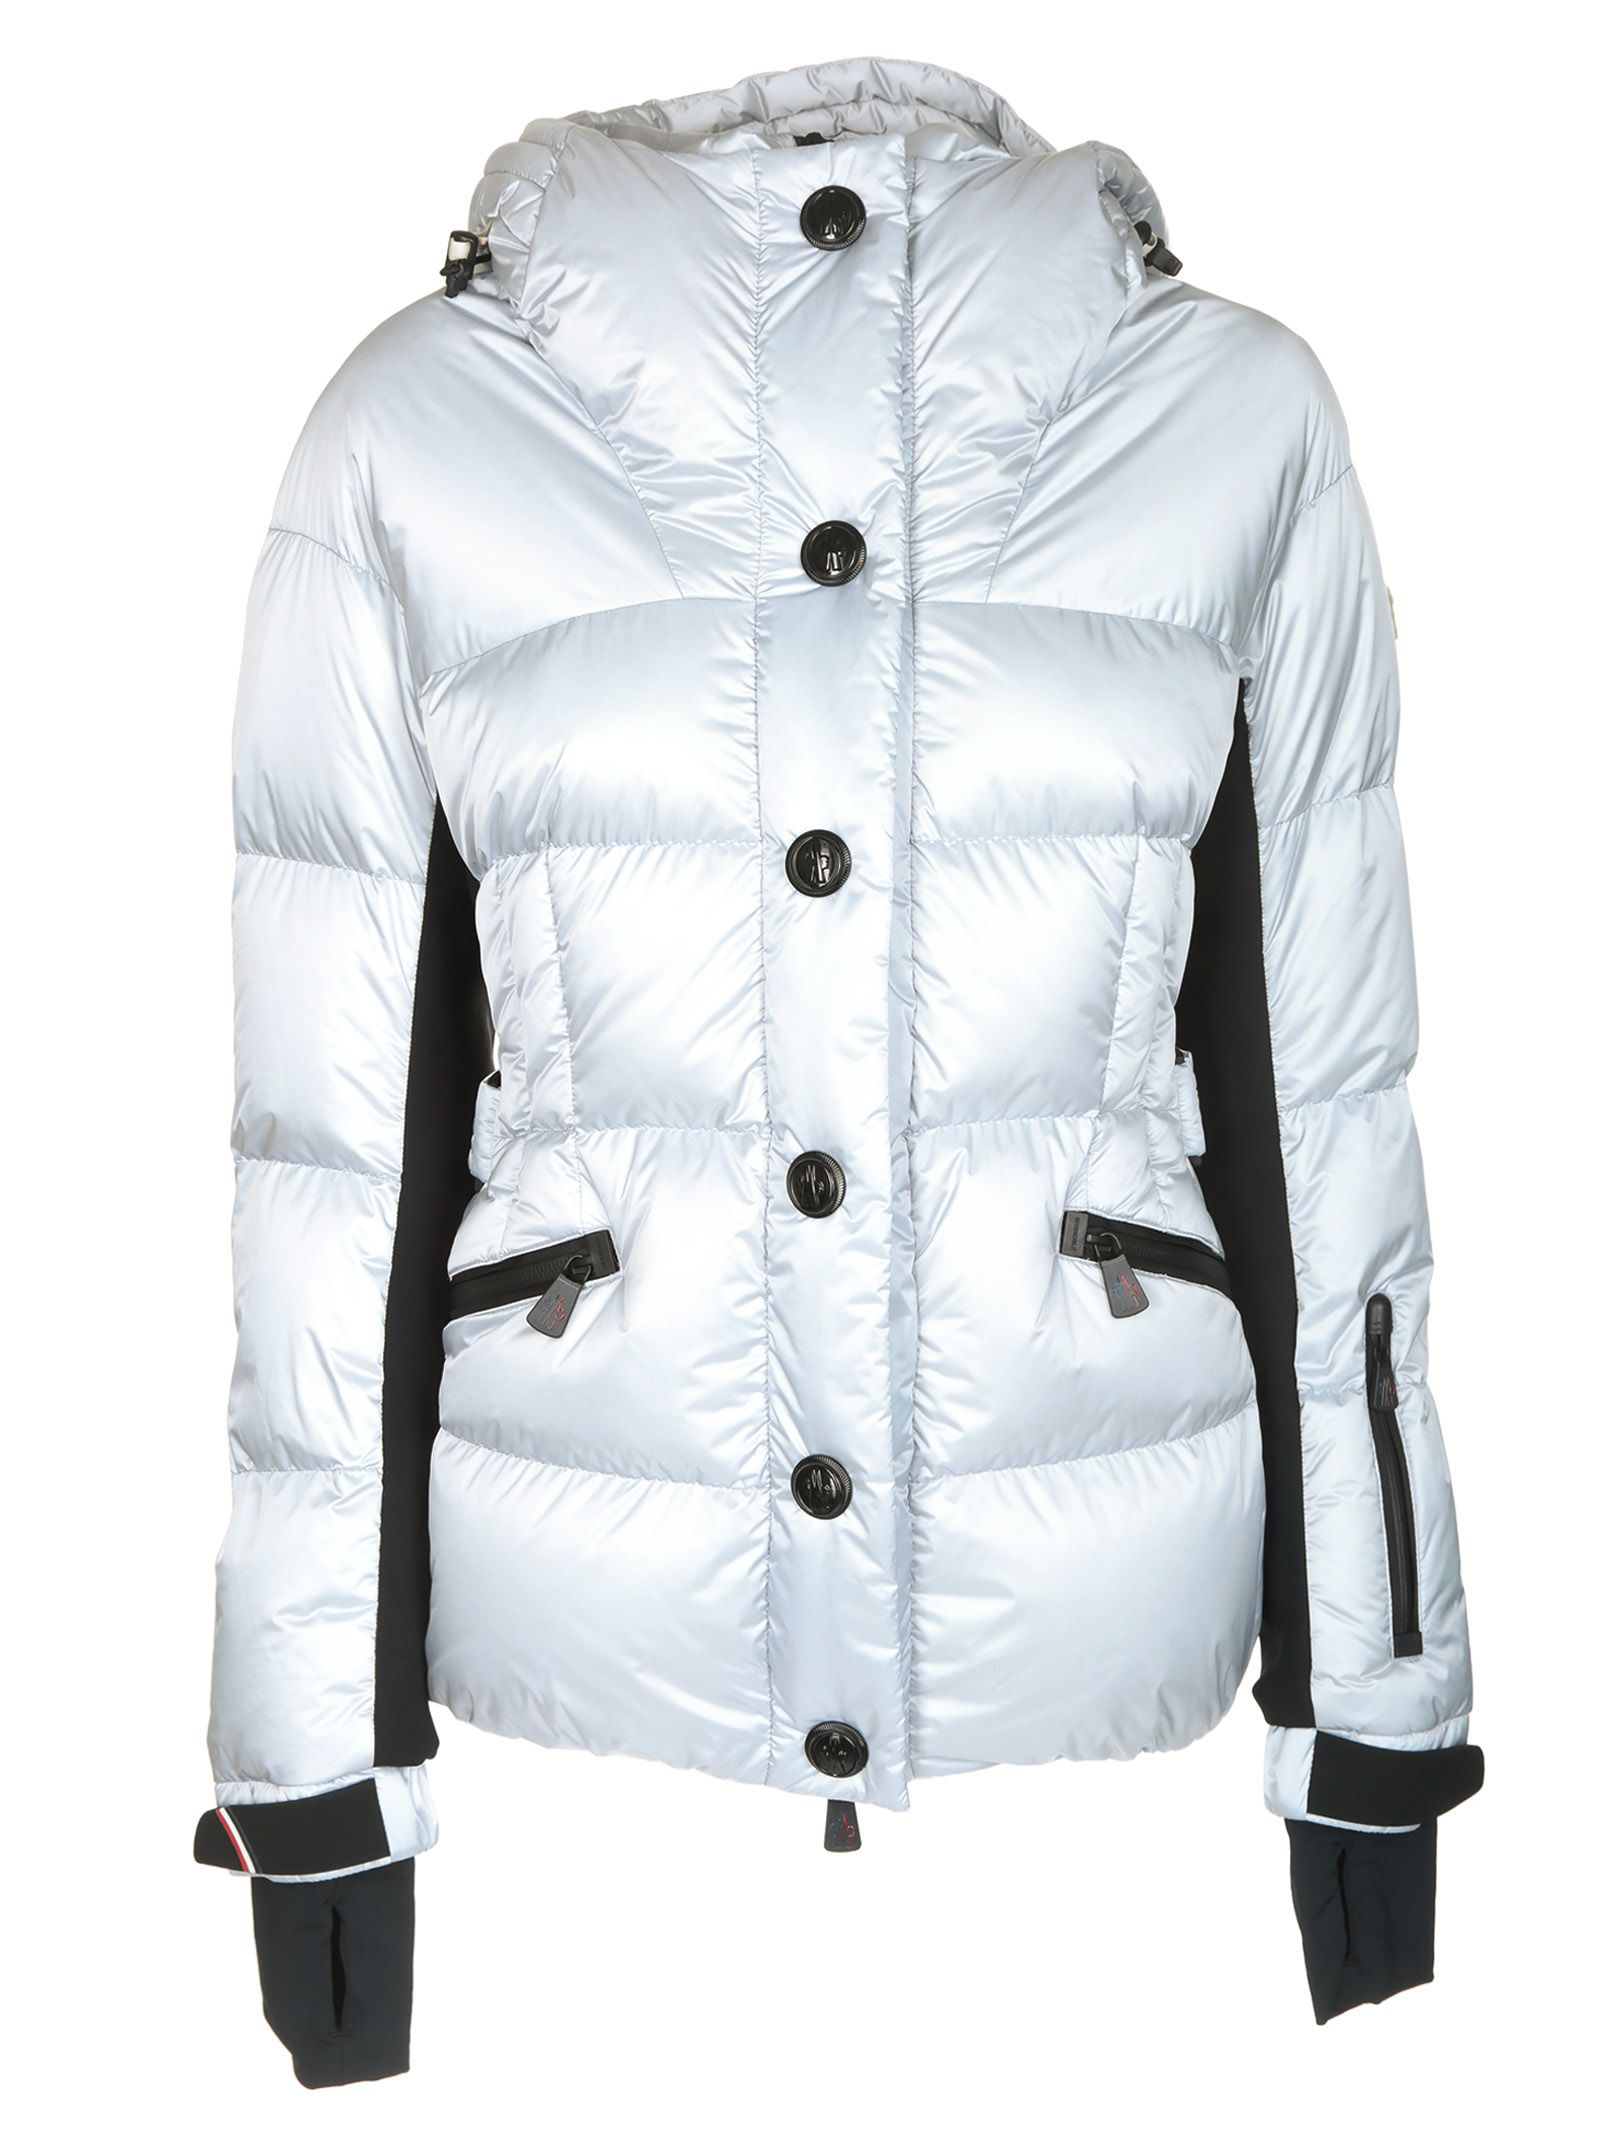 Moncler Grenoble Reflective Padded Jacket